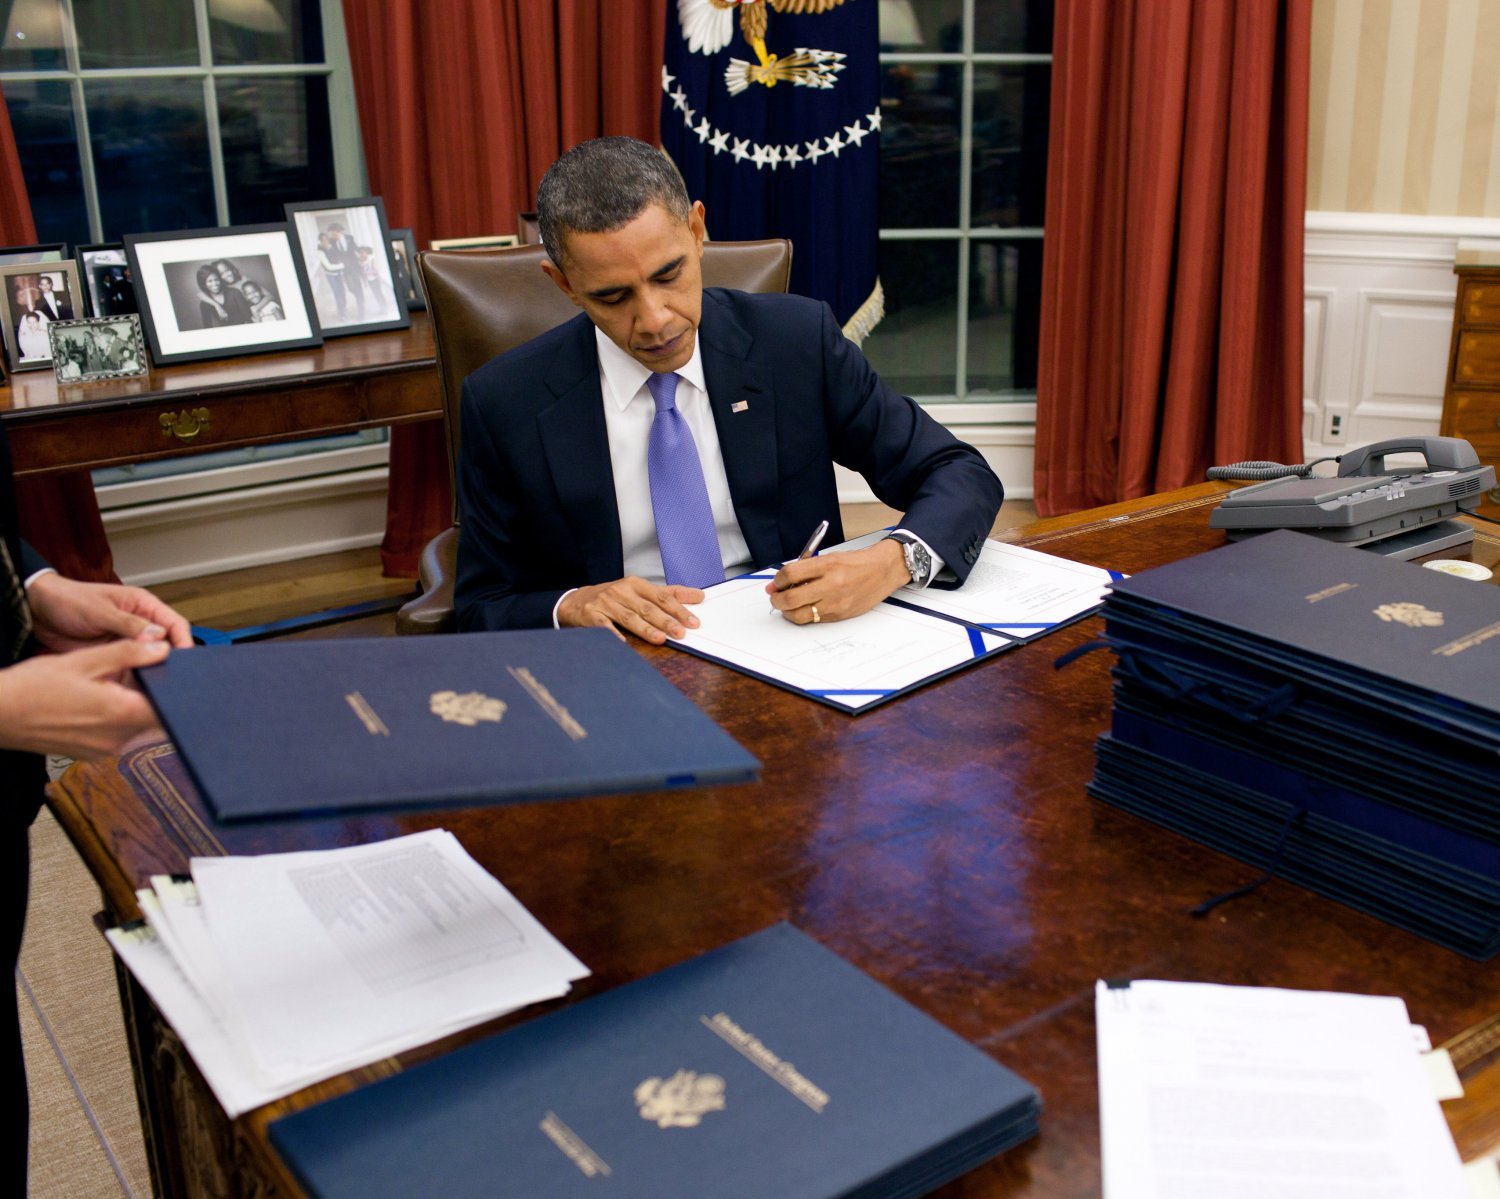 PRESIDENT BARACK OBAMA SIGNS LEGISLATION IN THE OVAL OFFICE 8X10 PHOTO (ZY-376)